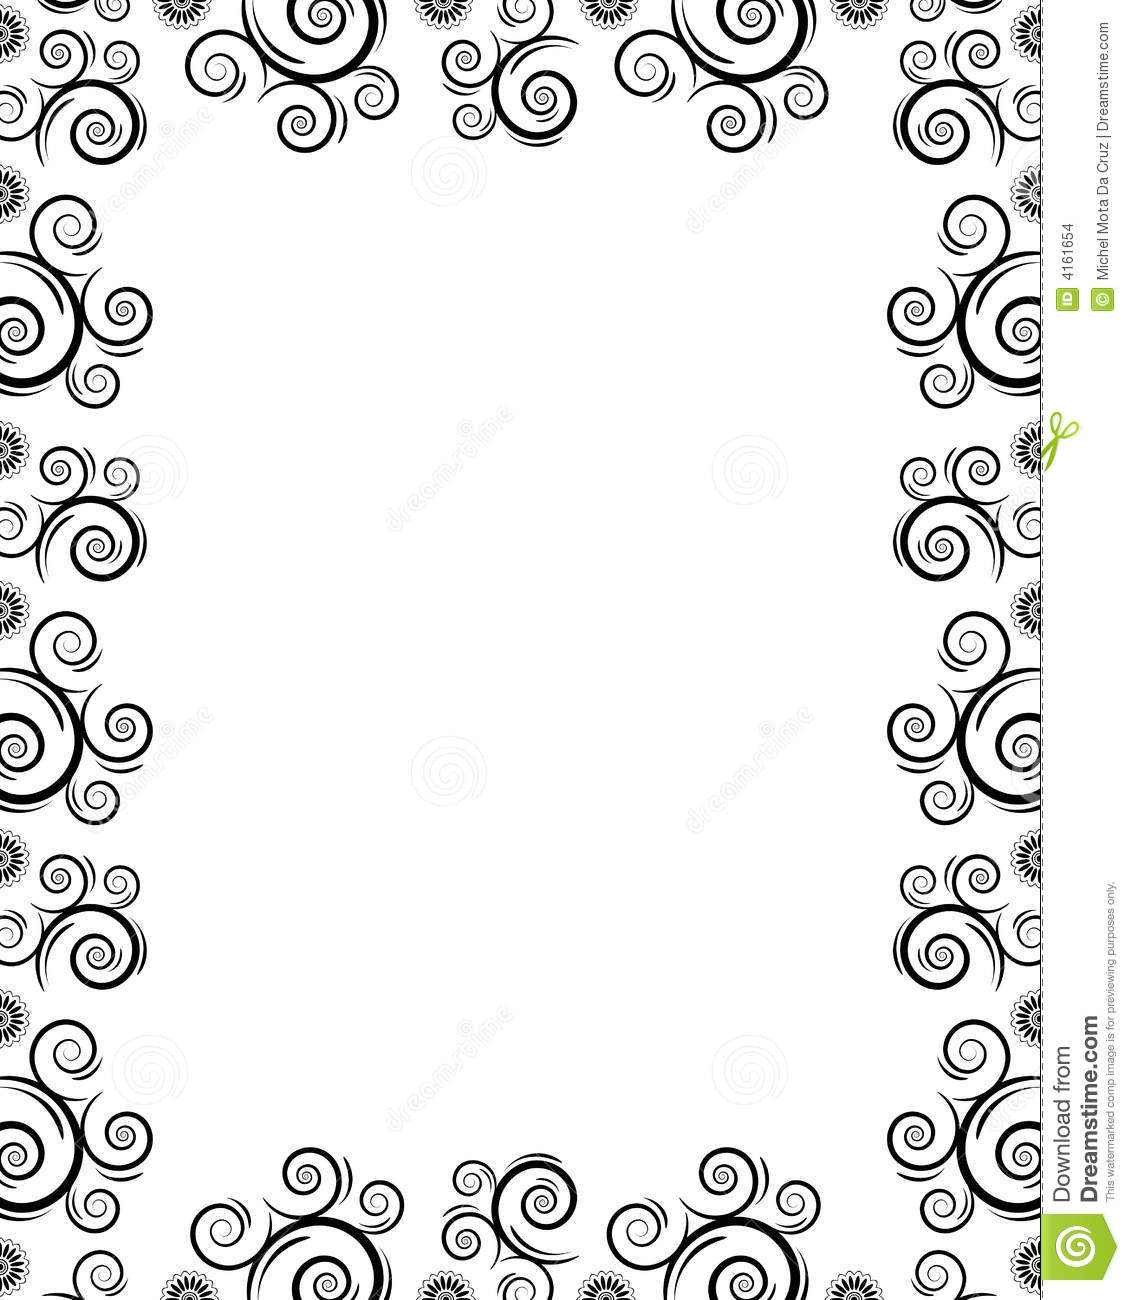 Borderlines Clipart 20 Free Cliparts